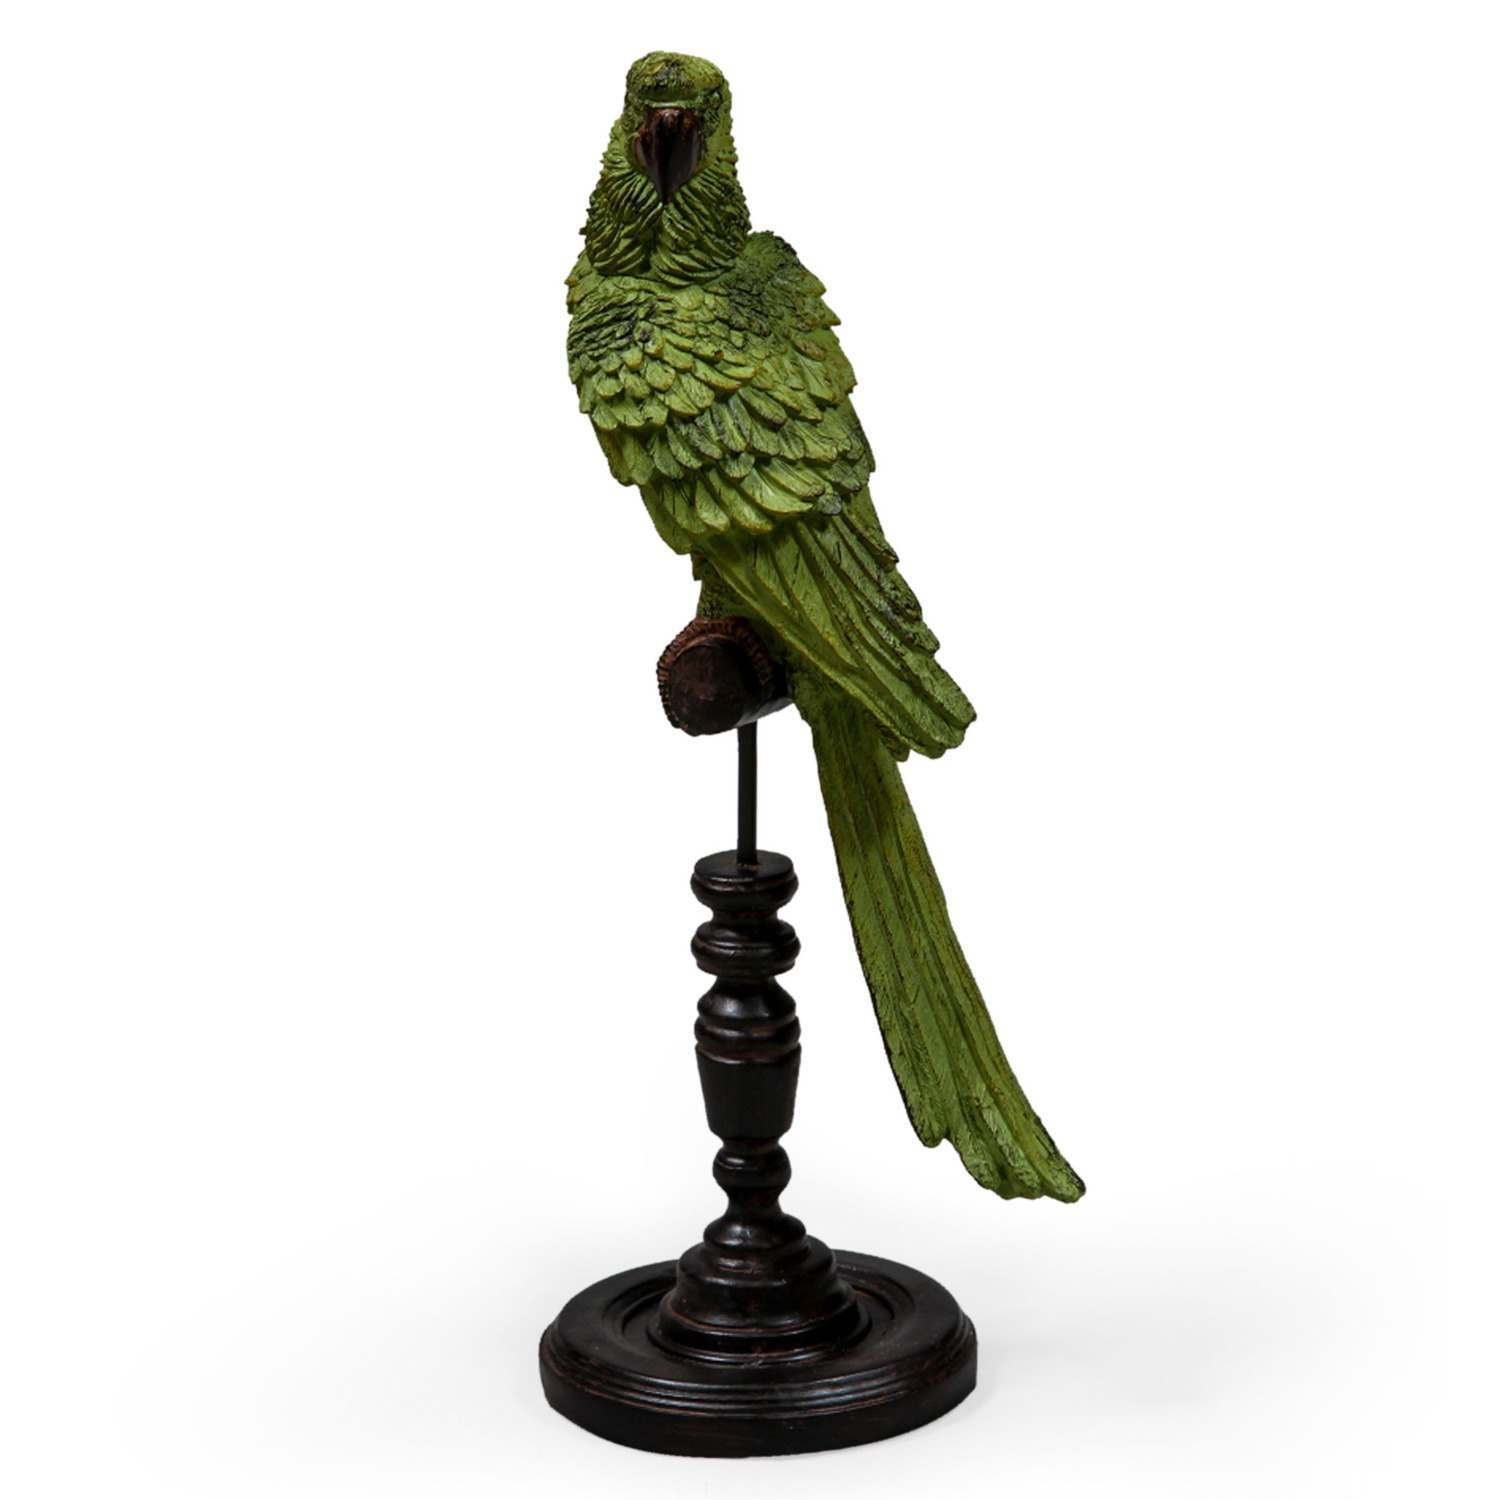 An image of Green Parrot on Perch